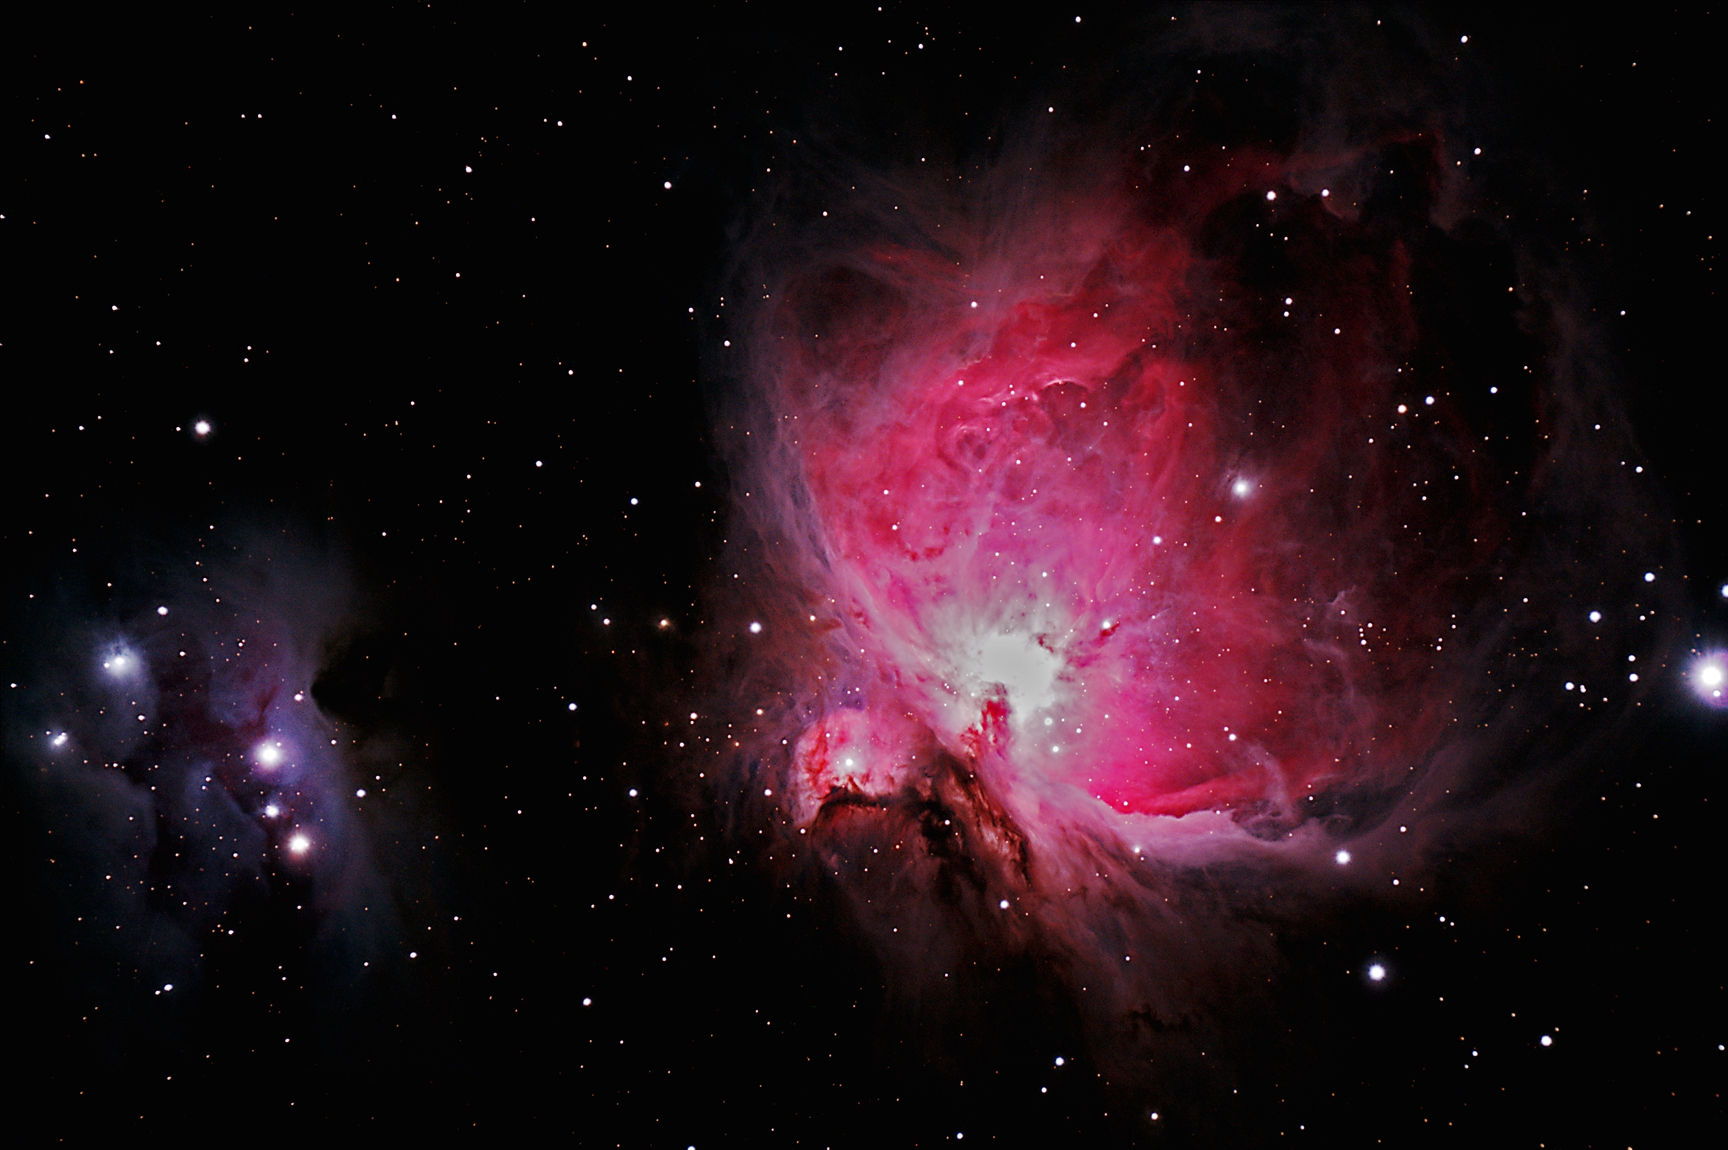 M42 The Great Nebula and the Running Man